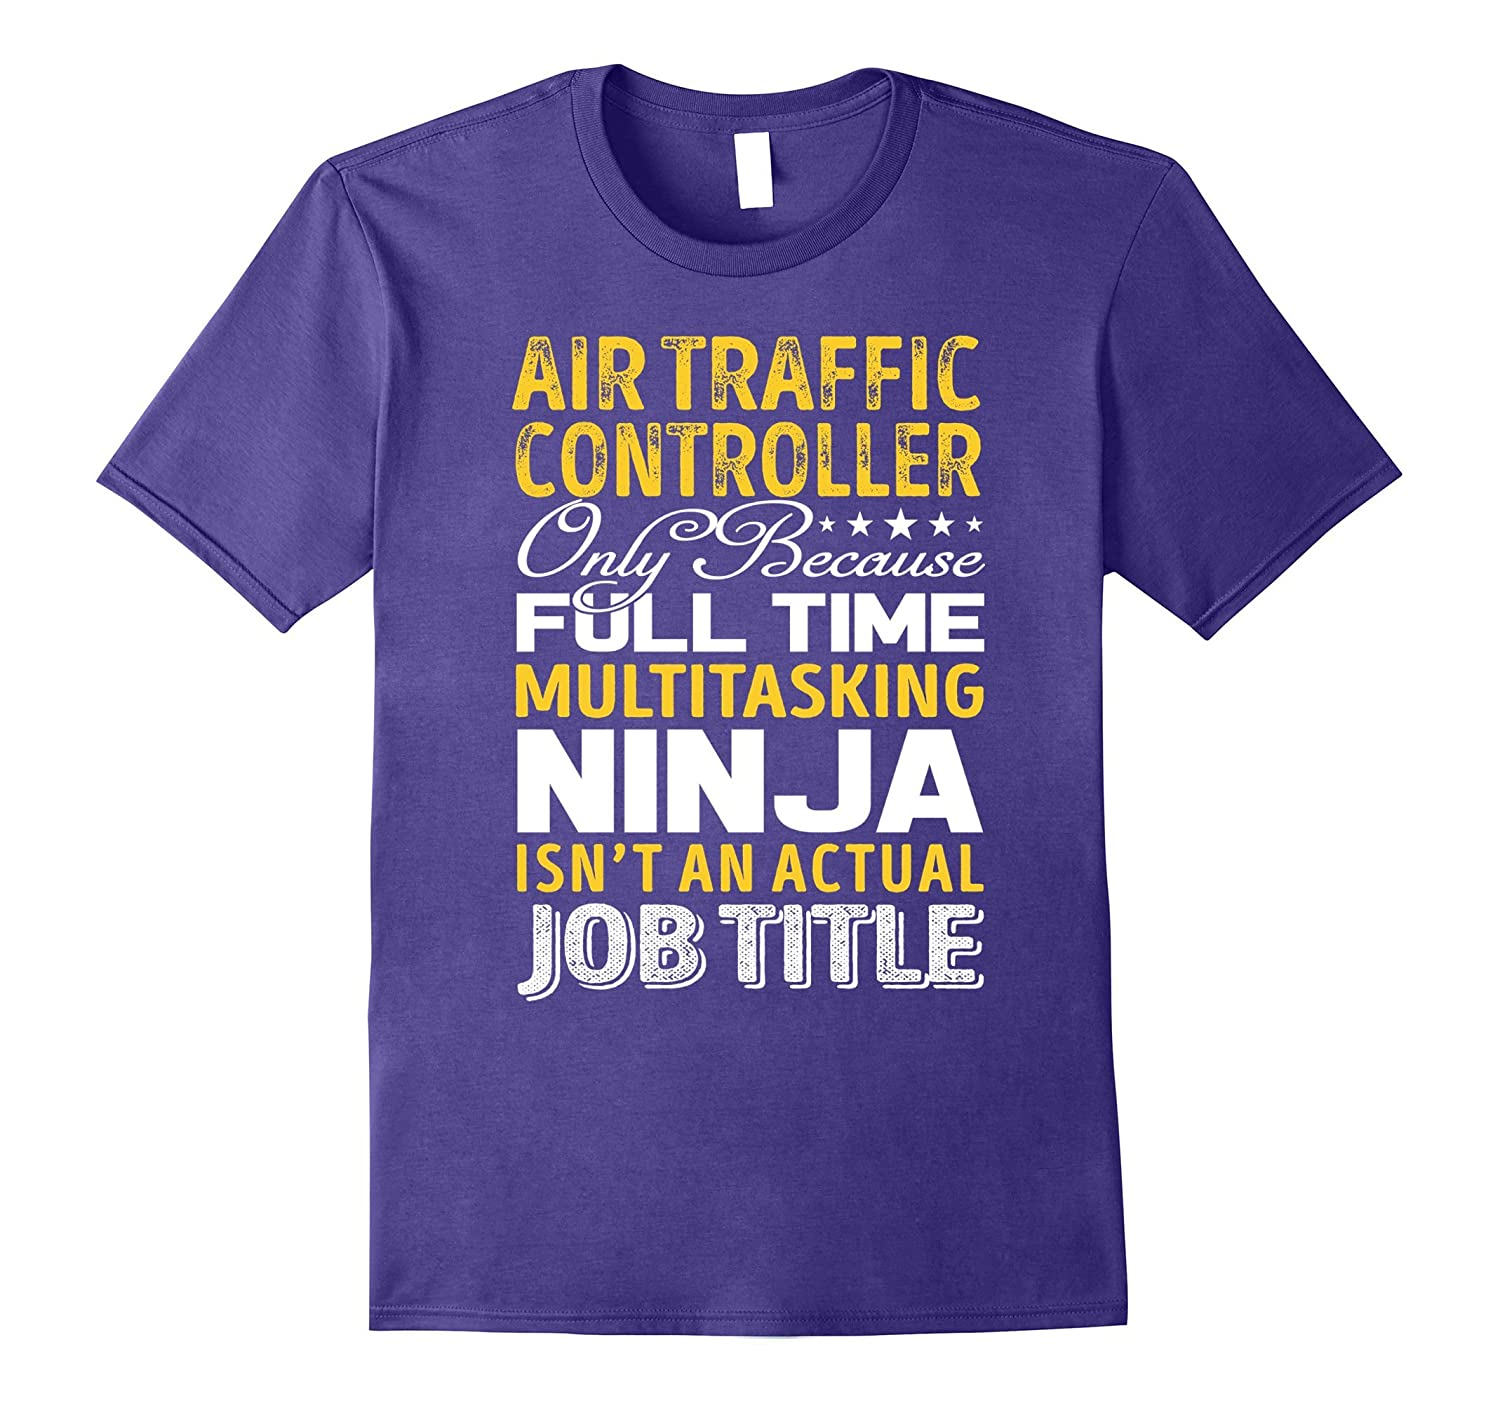 Air Traffic Controller Is Not An Actual Job Title TShirt-TJ